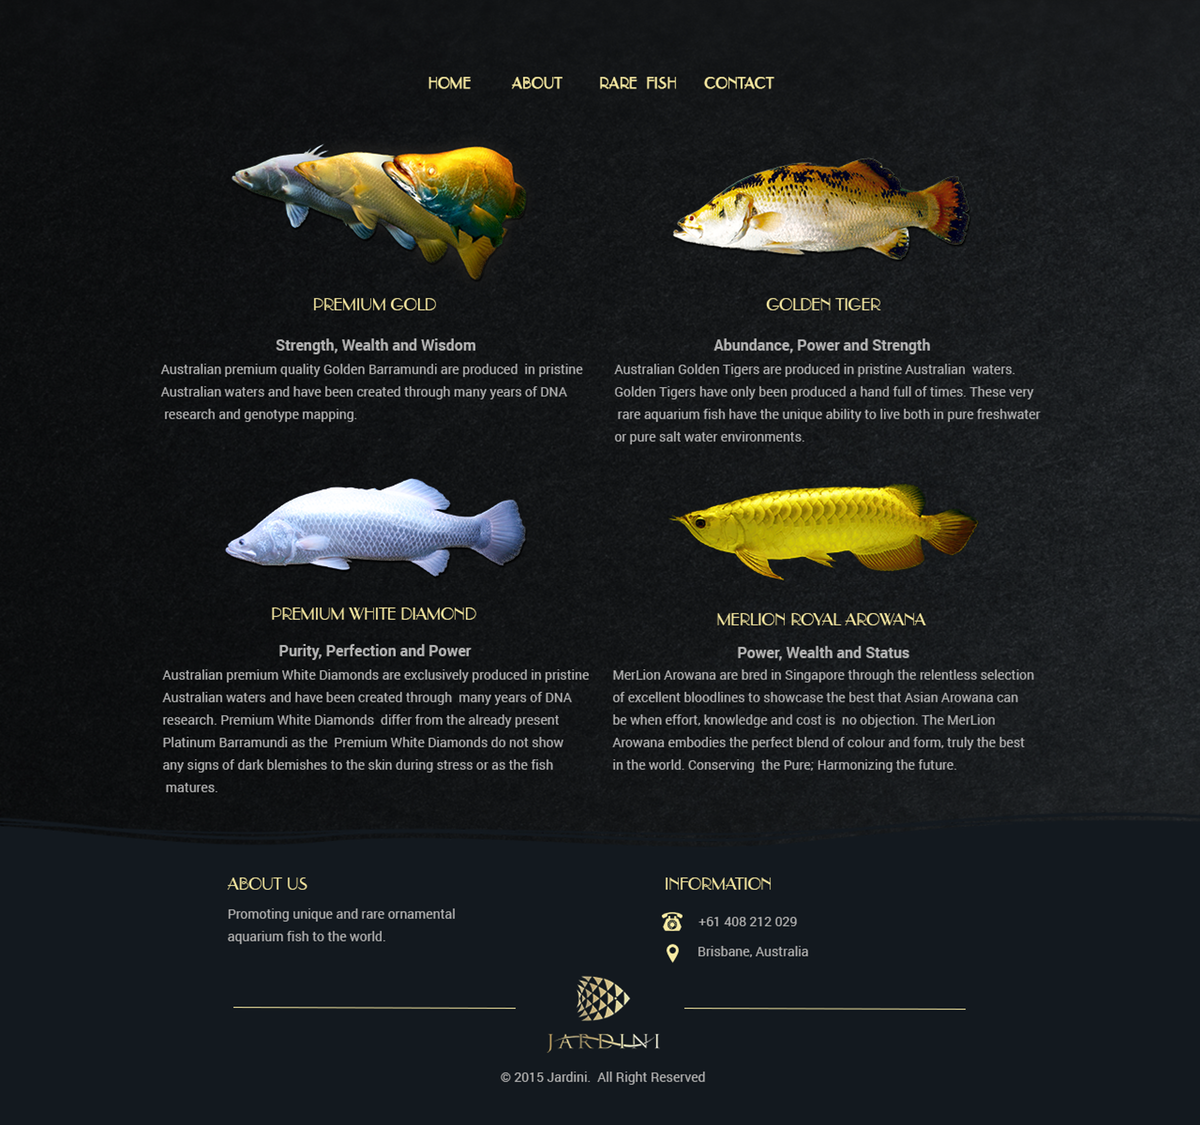 'Rare Fish' page for website